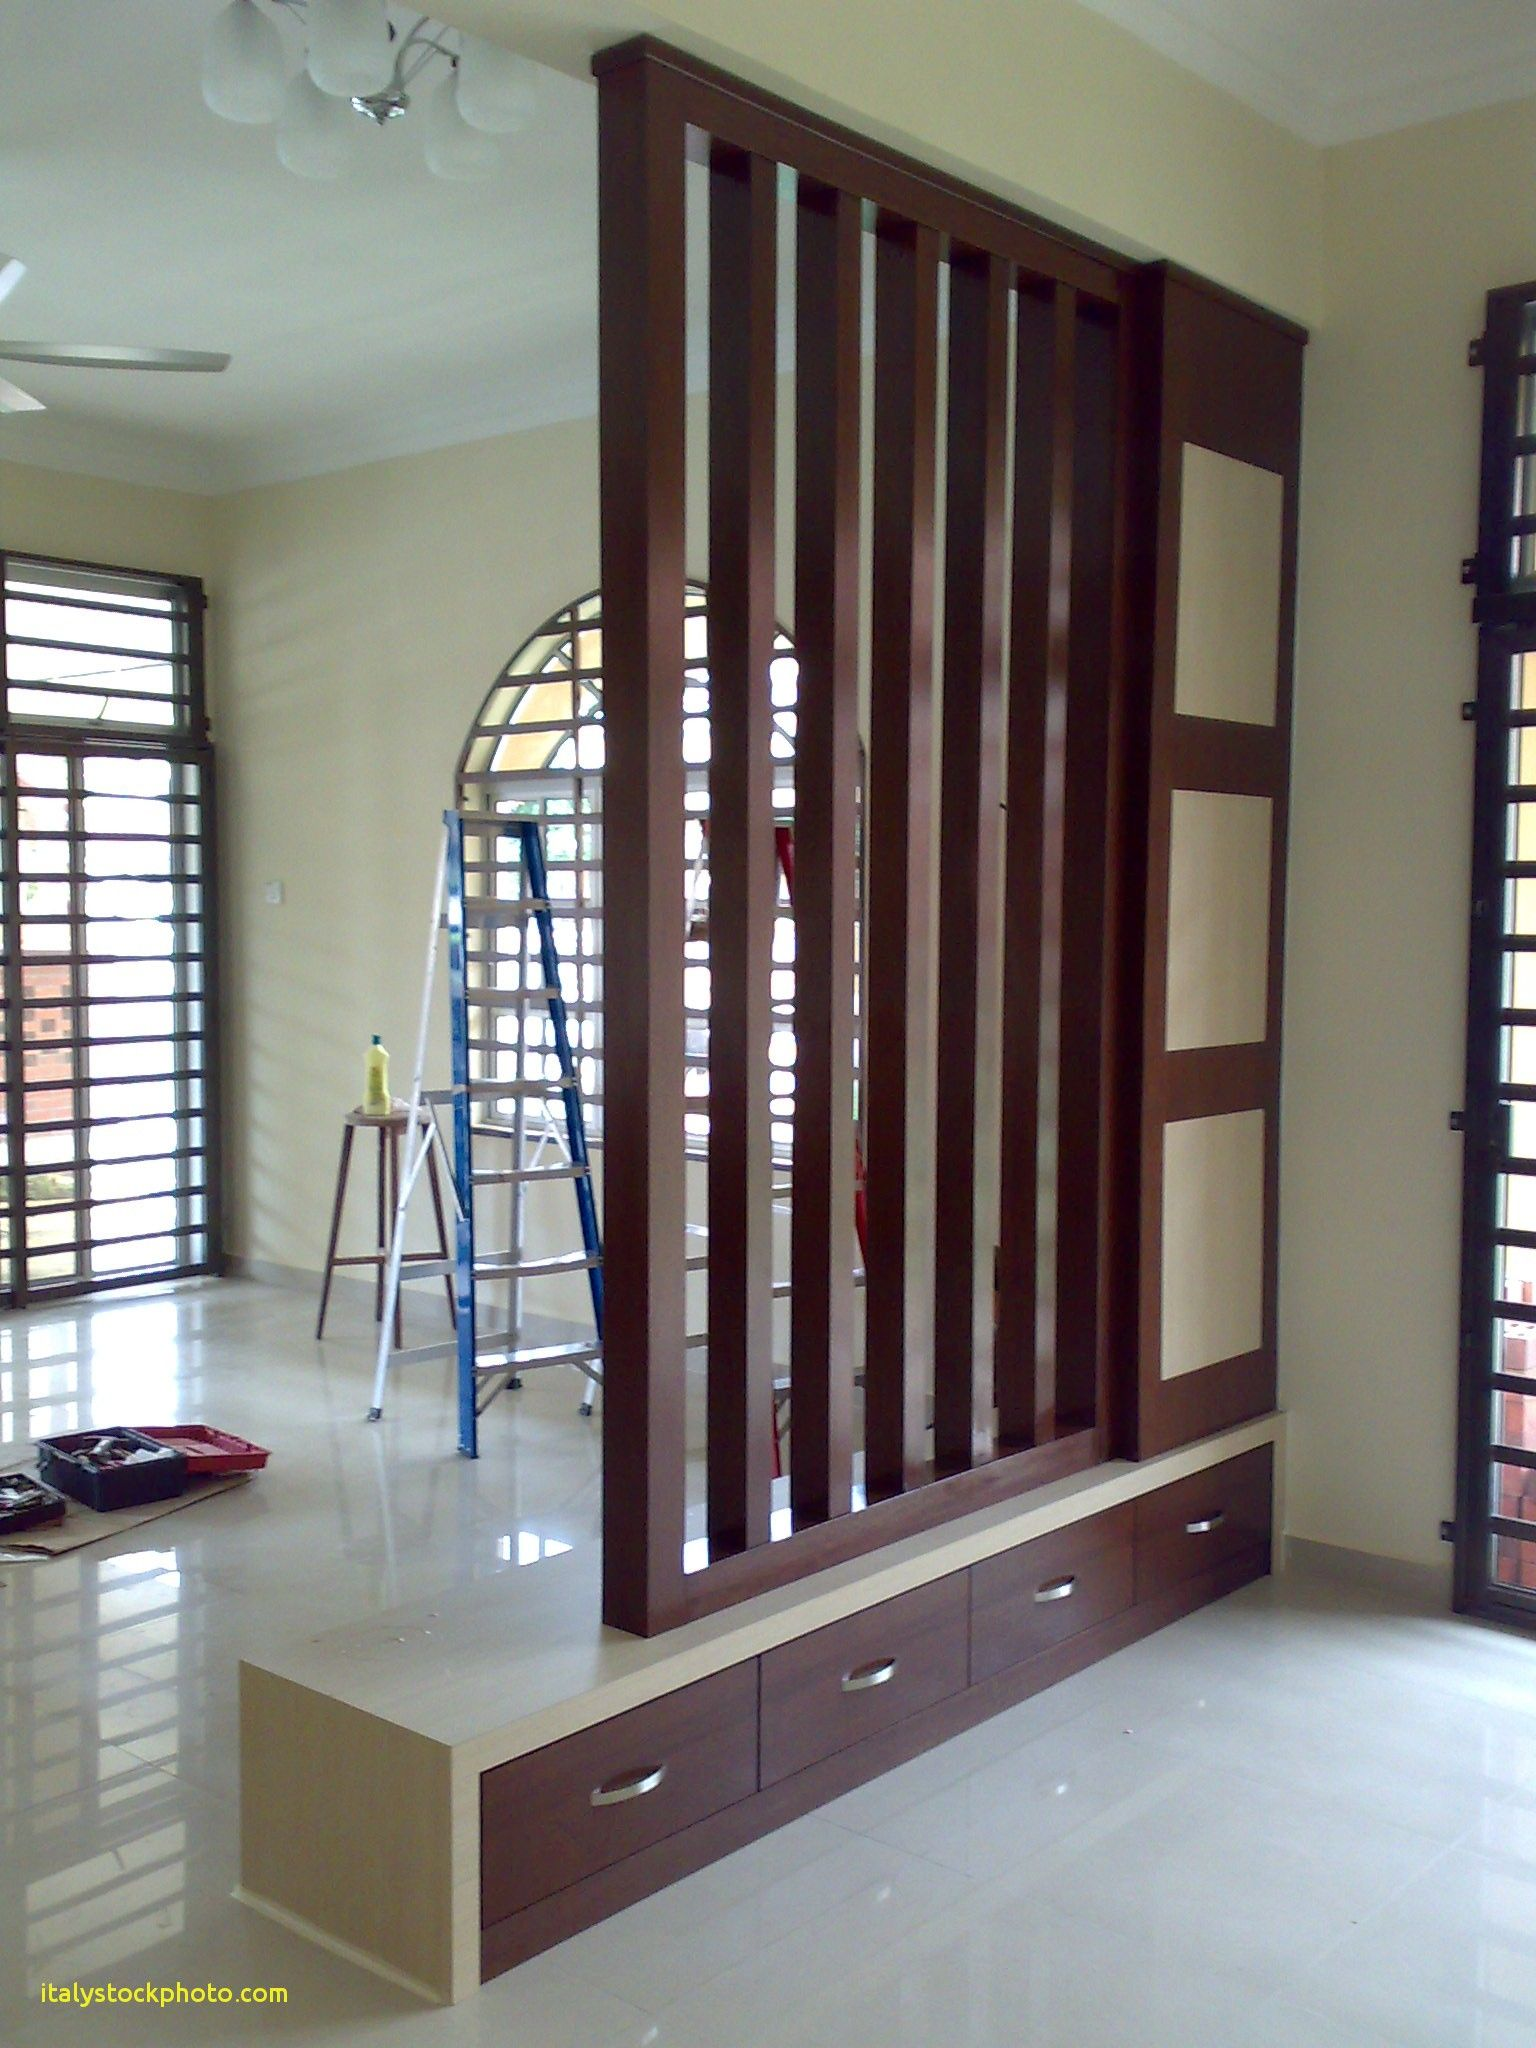 partition home design house for rent near me interiordesign partition. Black Bedroom Furniture Sets. Home Design Ideas